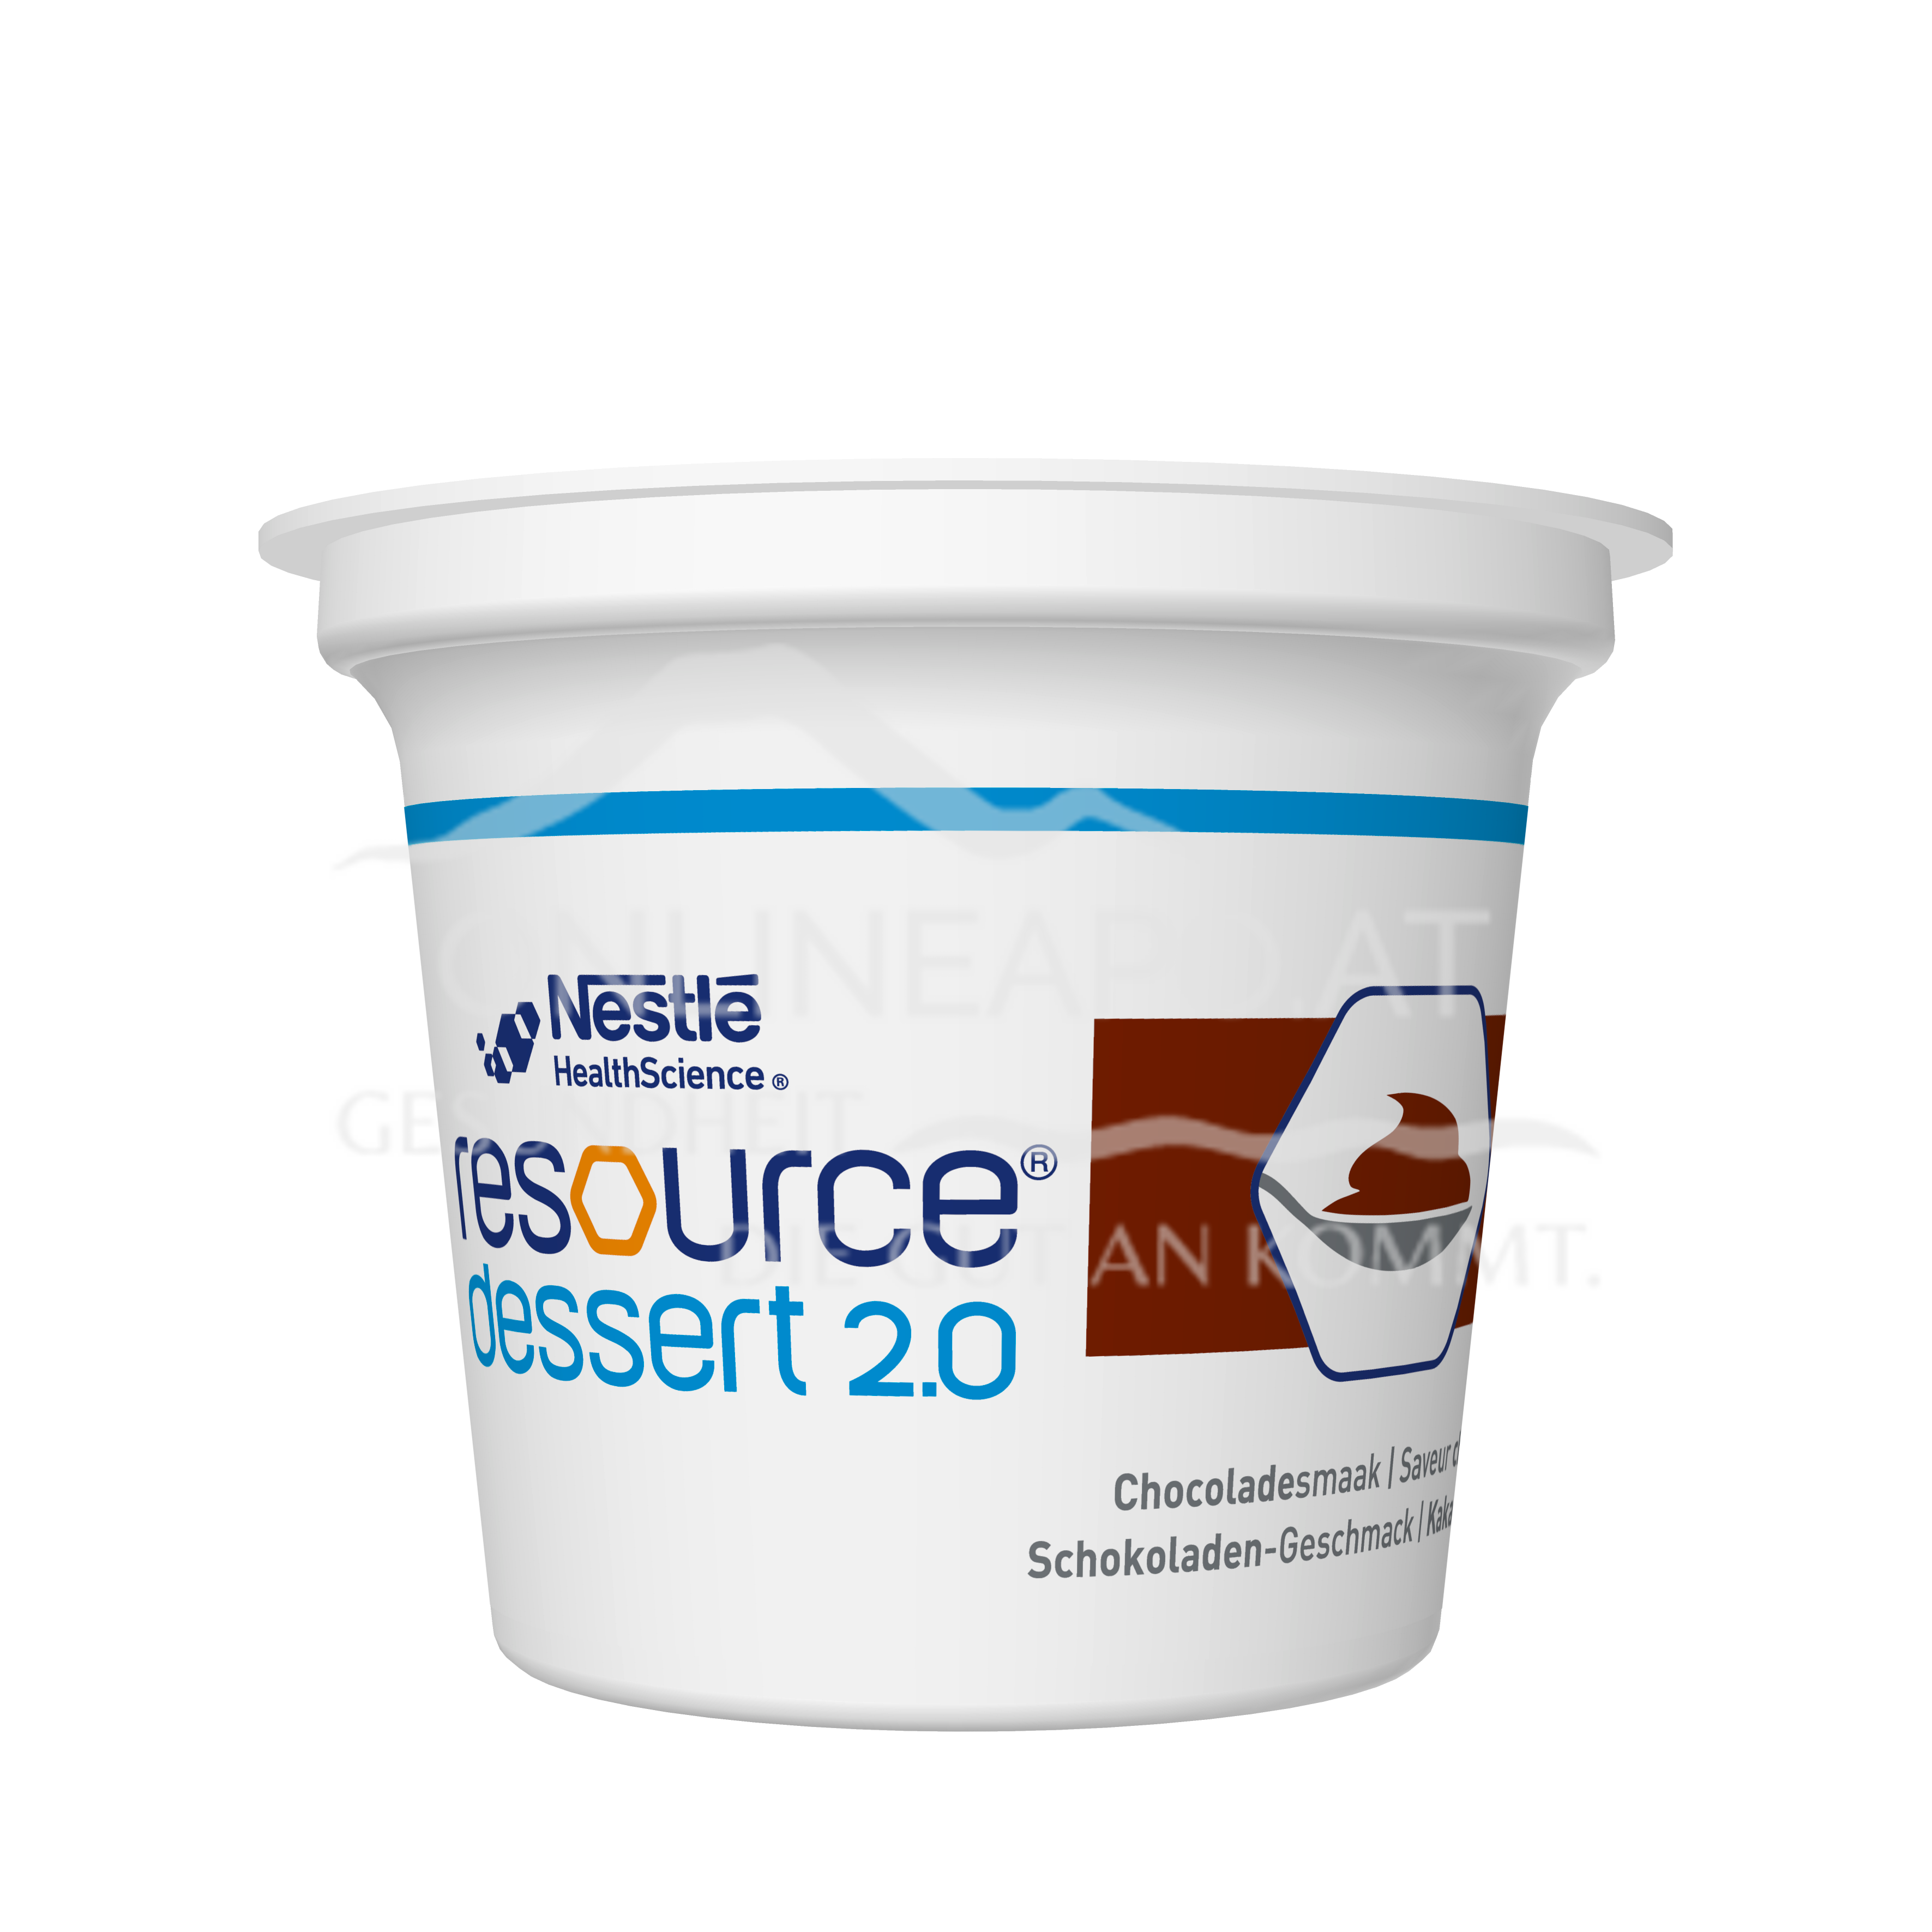 Resource® Dessert 2.0 Schokolade 4x125g